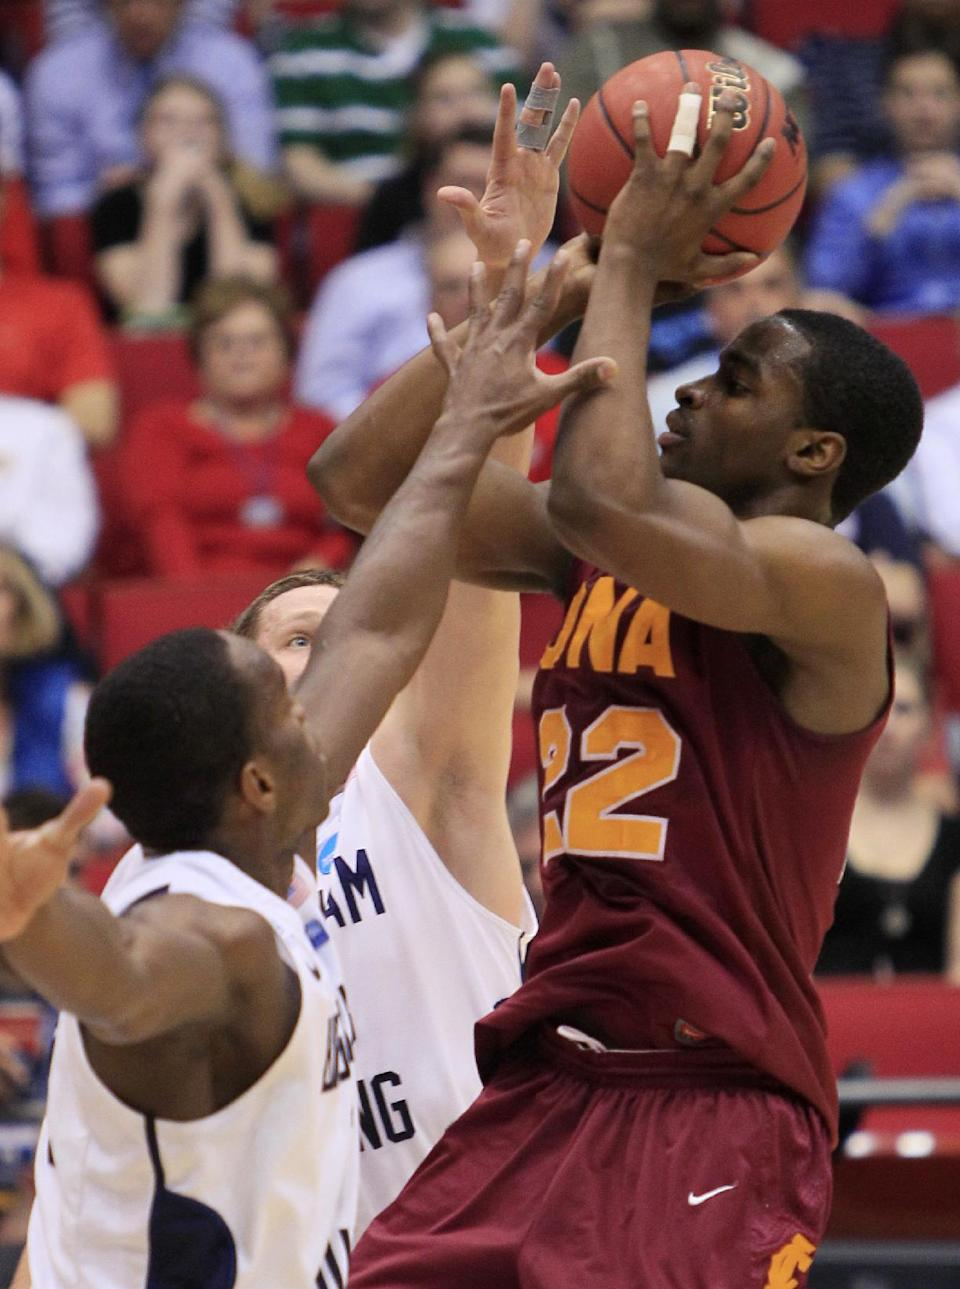 Iona guard Sean Armand (22) shoots against Brigham Young defenders in the first half of an NCAA men's college basketball tournament opening-round game, Tuesday, March 13, 2012, in Dayton, Ohio. (AP Photo/Al Behrman)